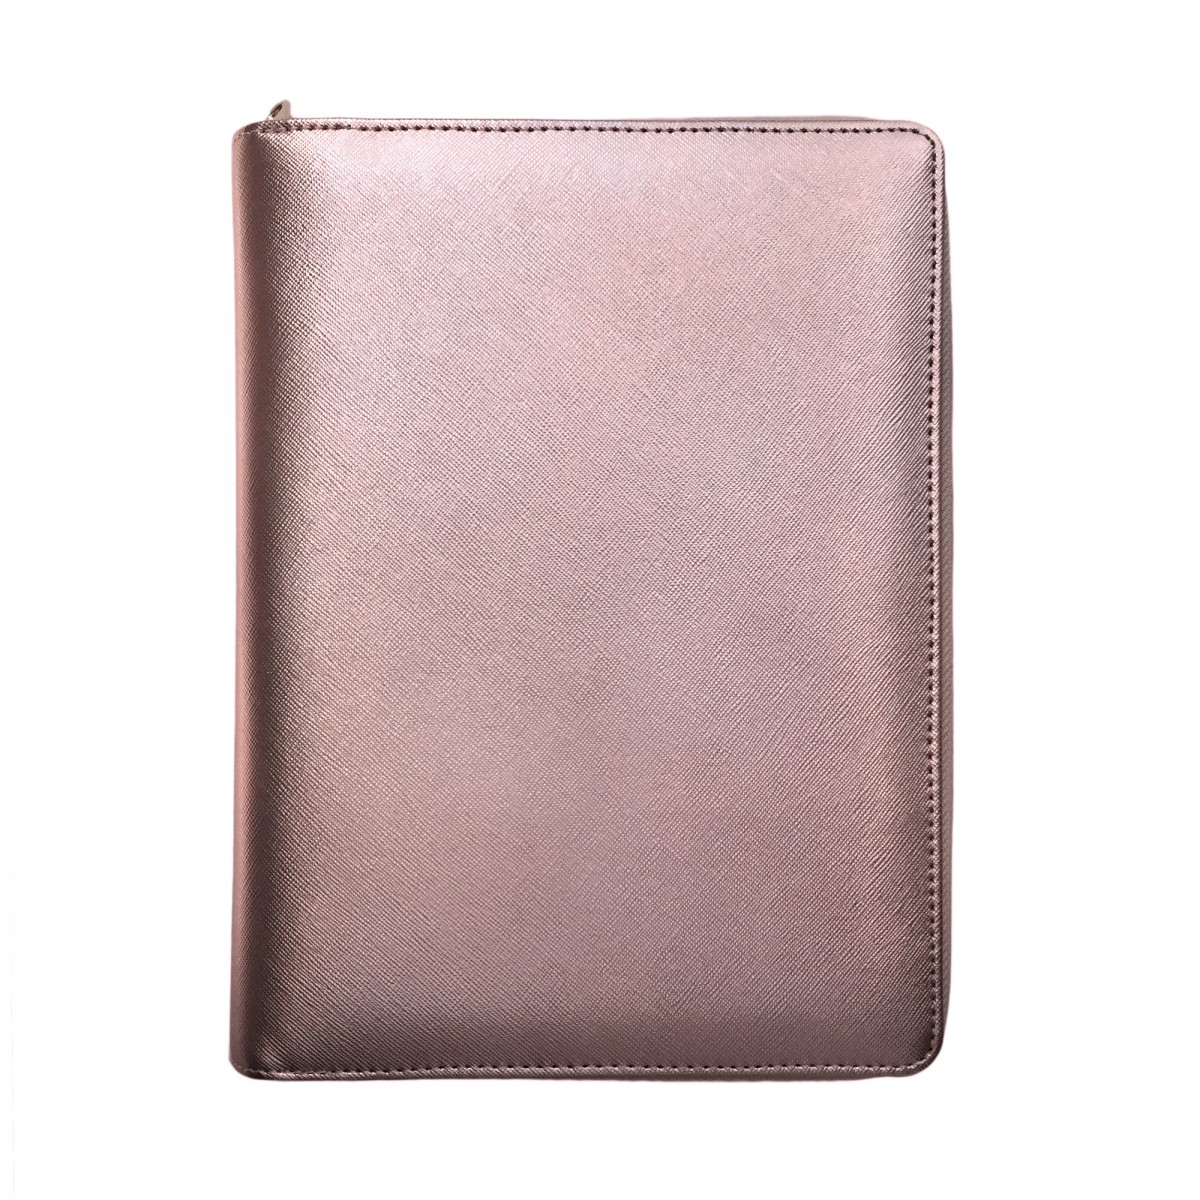 [Minor Flaw] DOKIBOOK ROSEGOLD ZIP LARGE